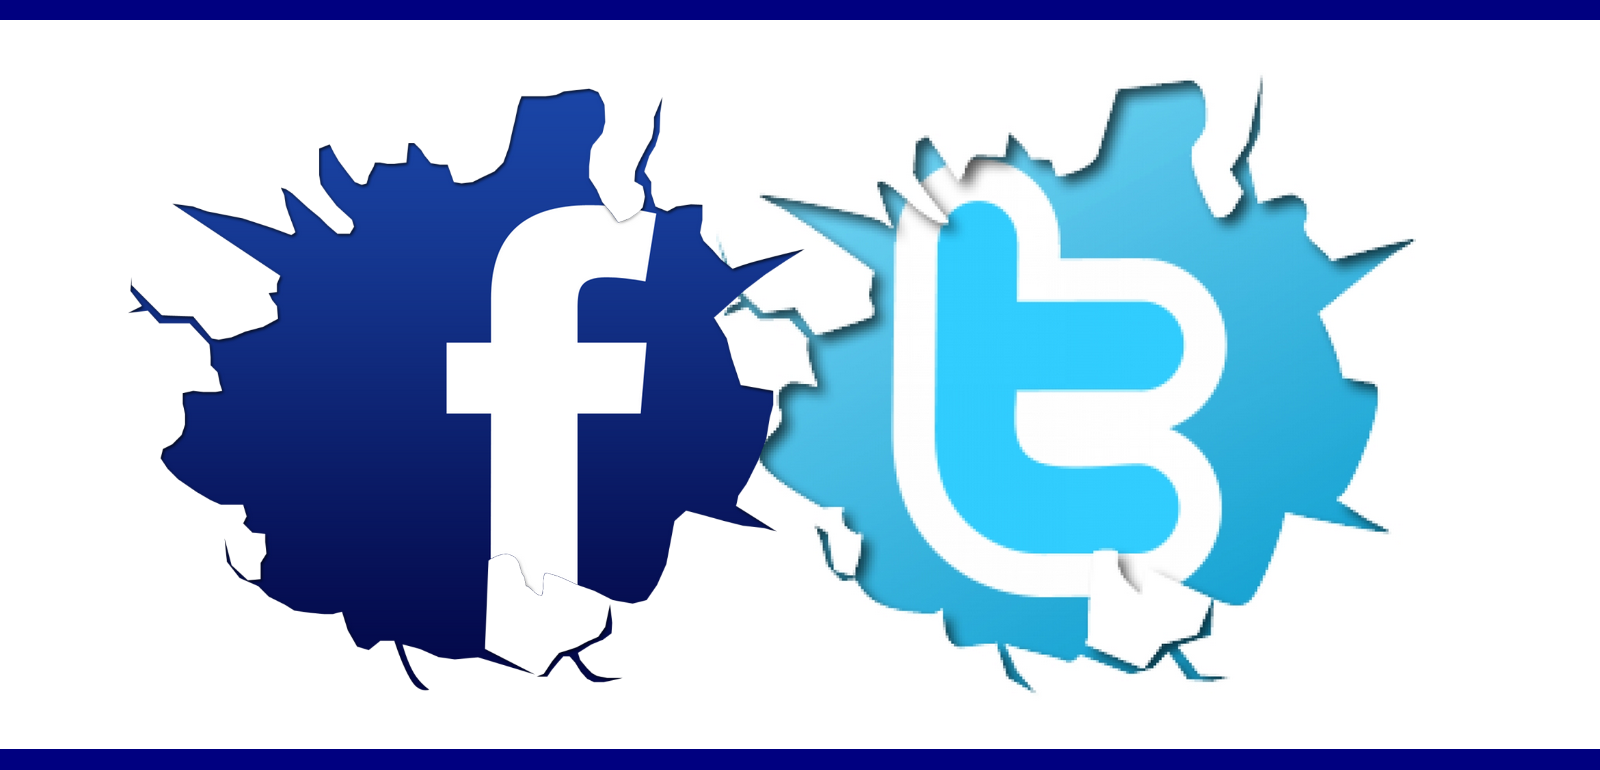 social-media_icons-exploding-from-page_blu-ol_1600x770